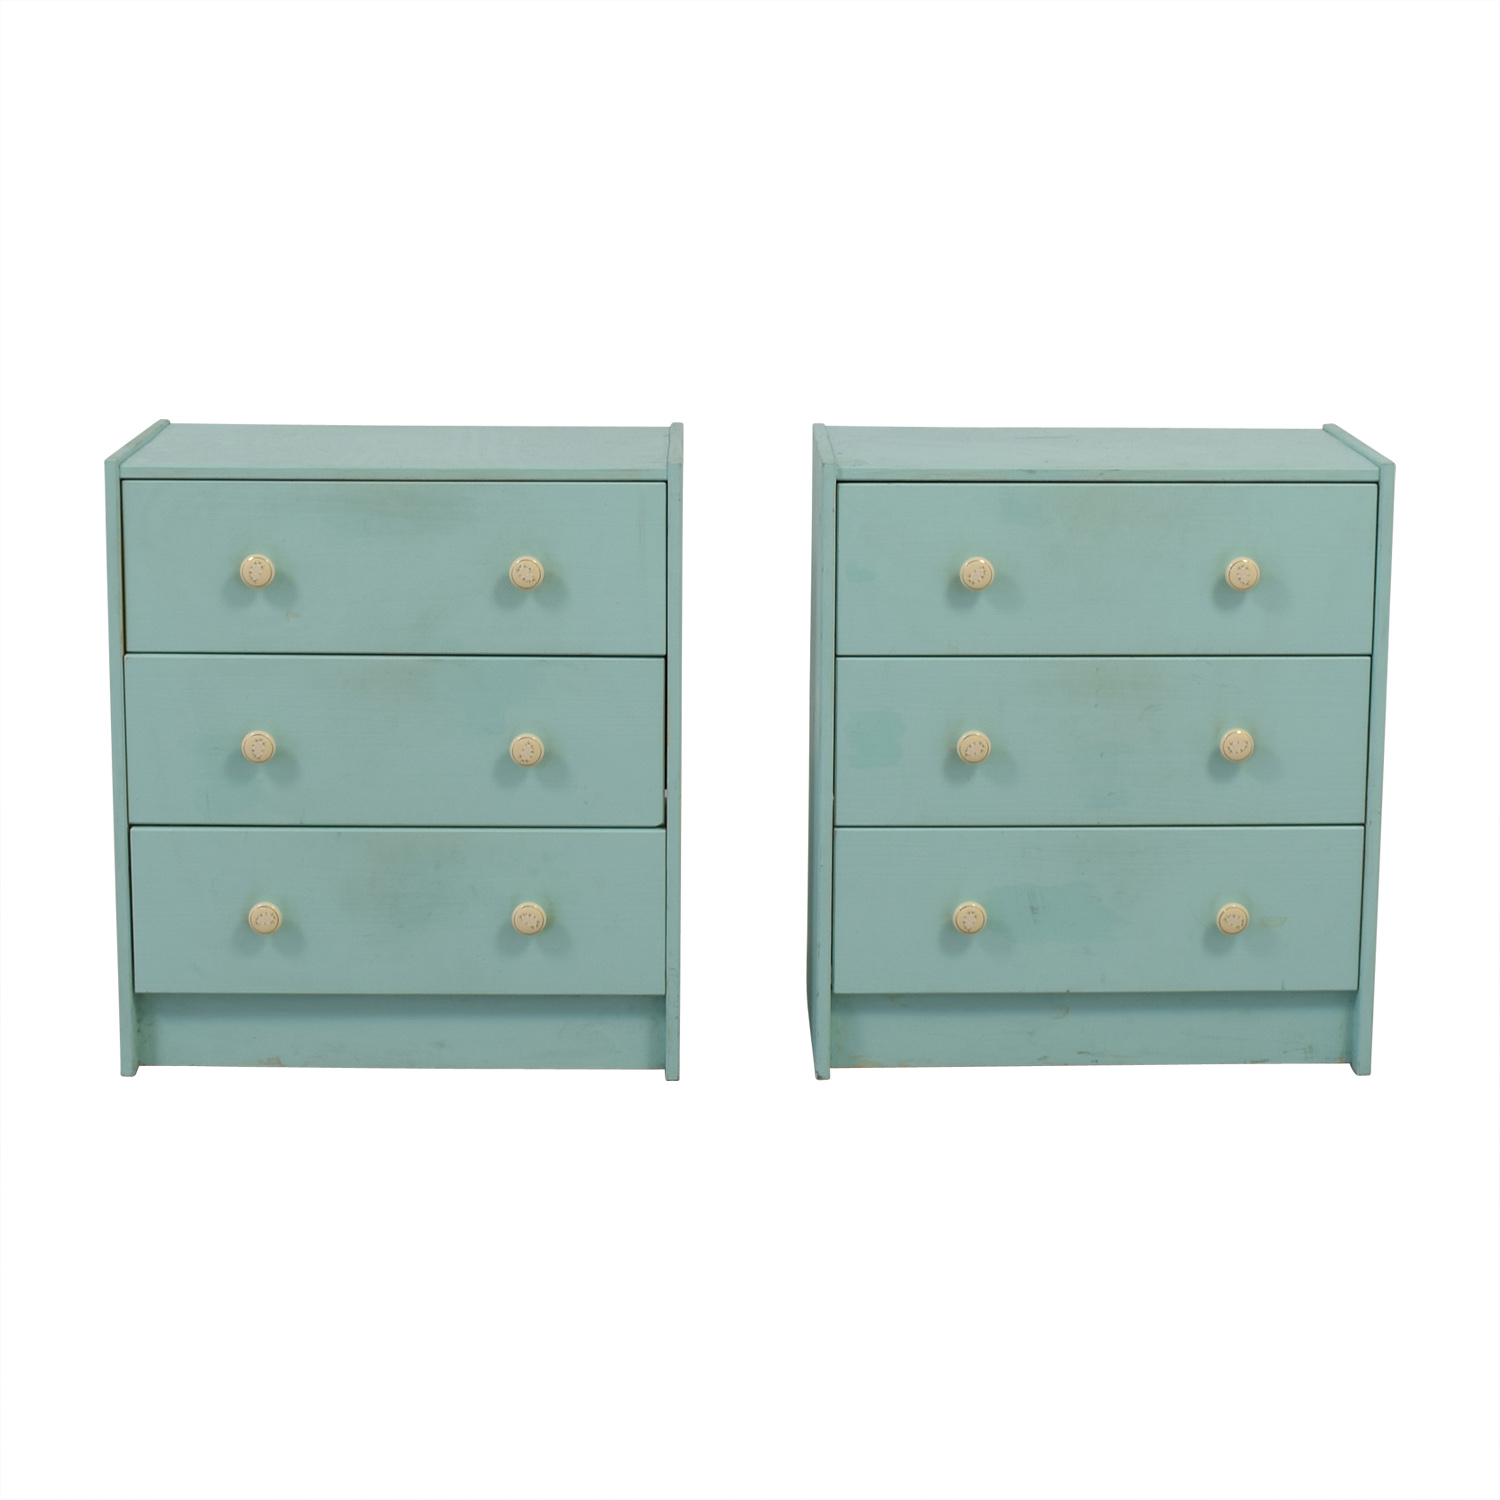 Turquoise Three-Drawer Dressers used